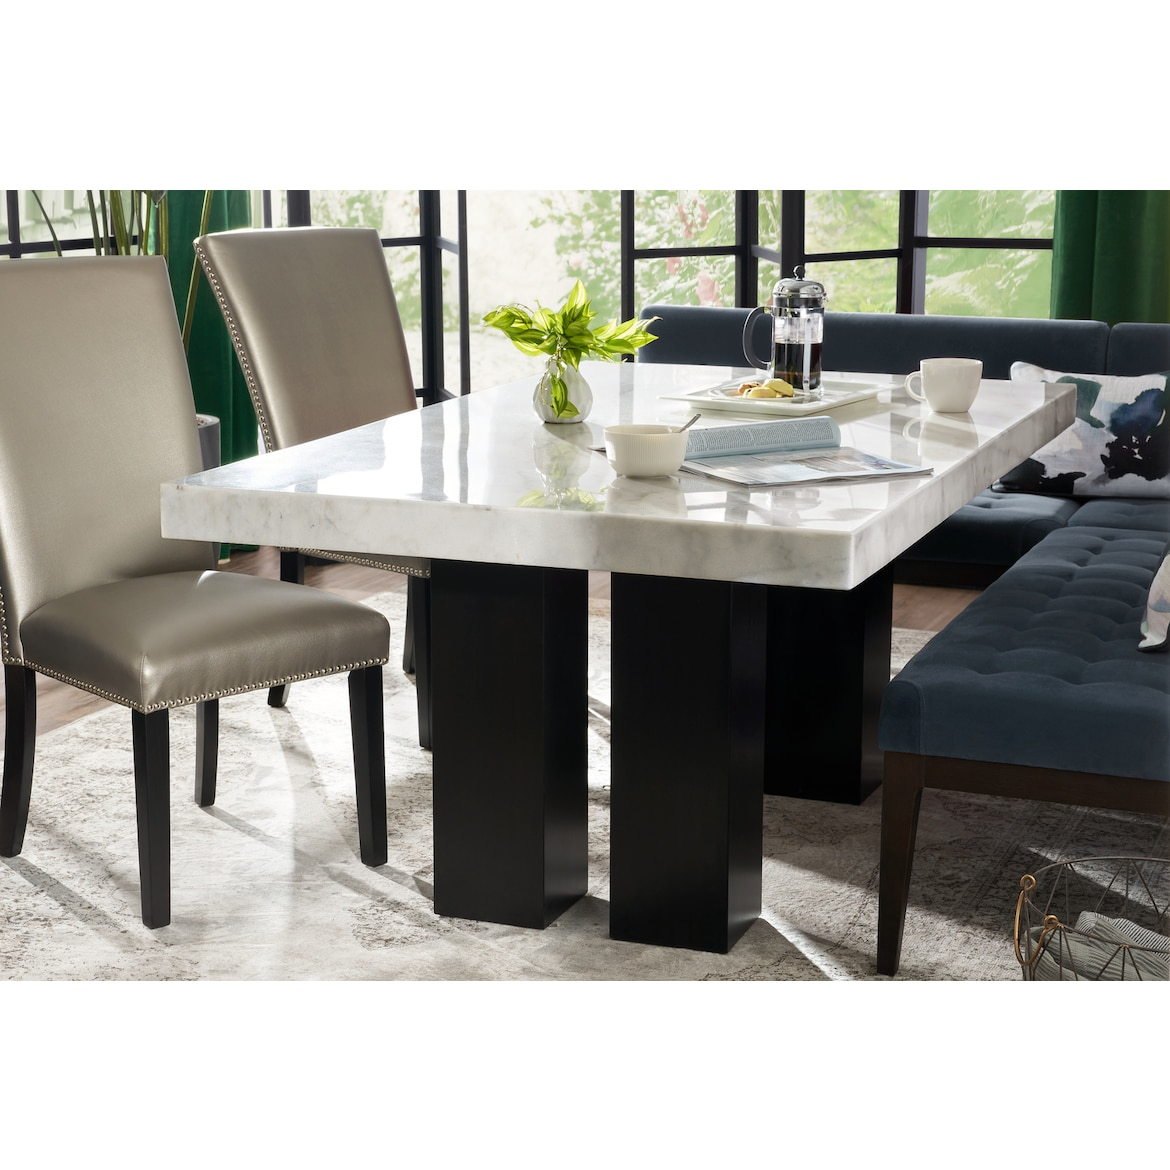 Dining Table With Banquette: Artemis Dining Table, Corner Banquette, And 2 Upholstered